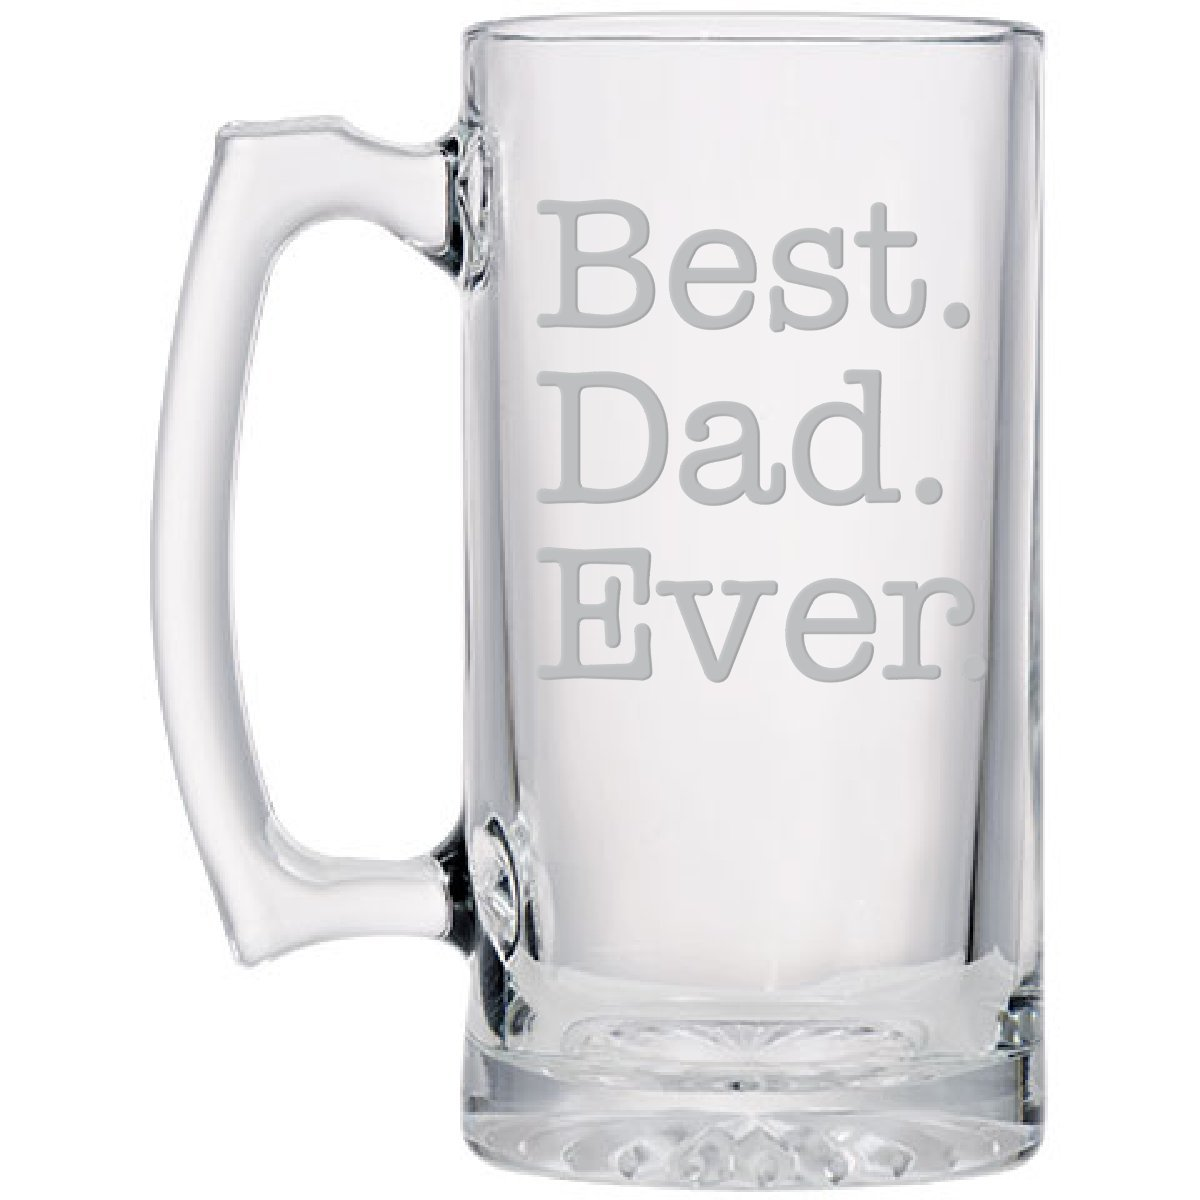 Best Dad Glass Beer Sports Mug, Hand-Engraved Jumbo 26.5 oz (Best Dad Ever)